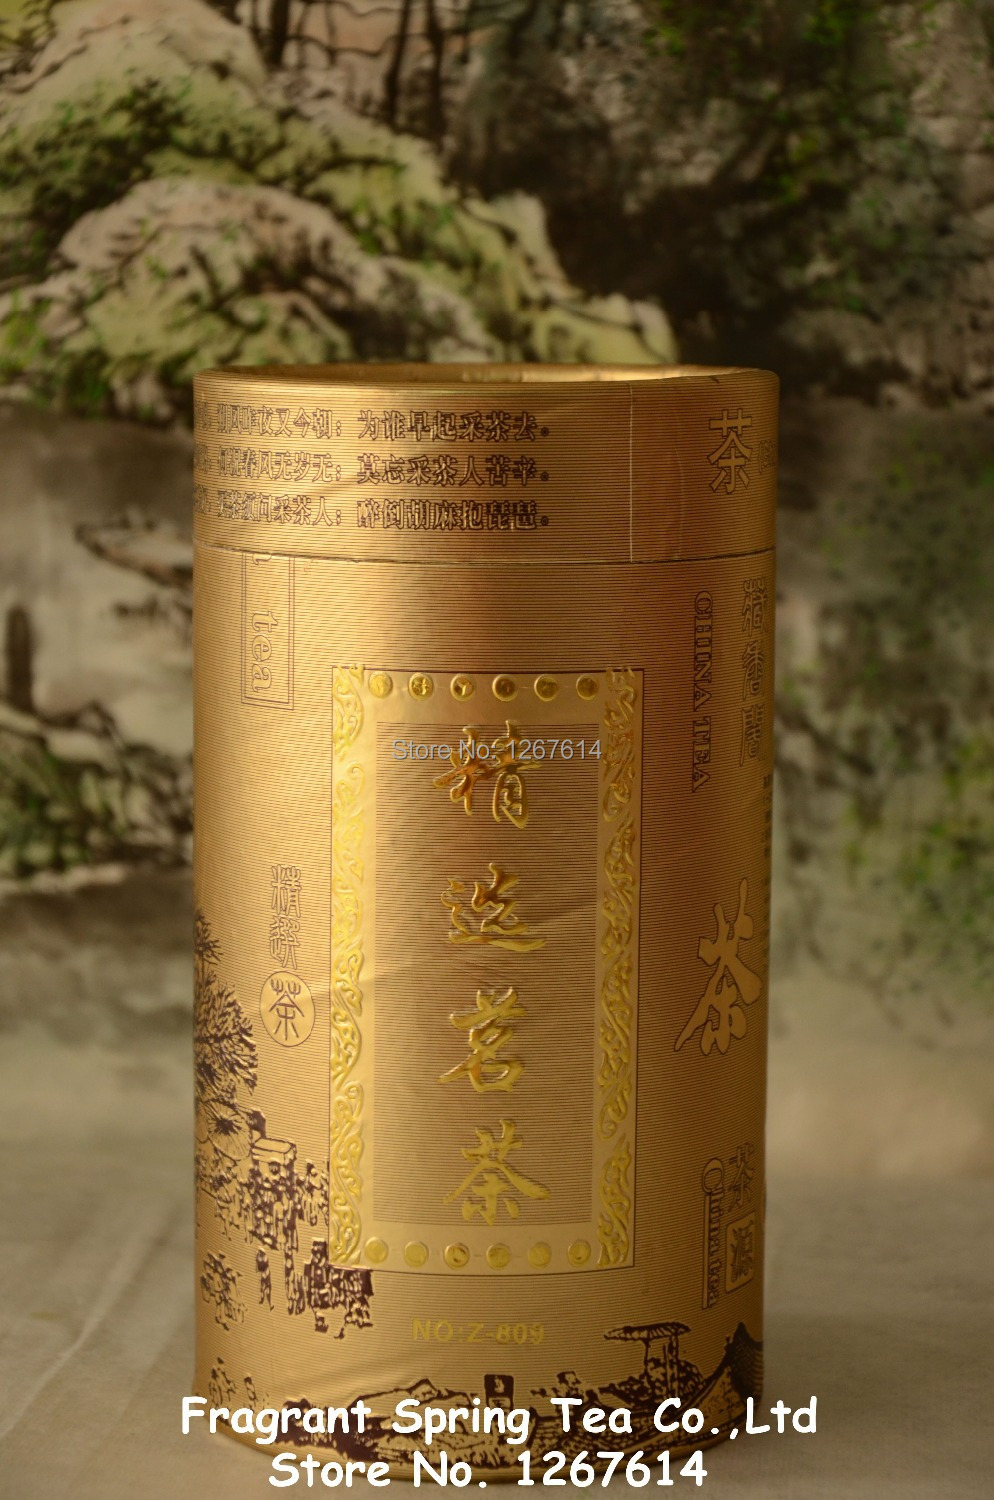 2014 March 3rd Spring Tea Wuyi Oolong, Wulong Tea, 150g/can in Iron Can, Free Shipping + Secret Gift and Get Beautiful Iron Can!<br><br>Aliexpress